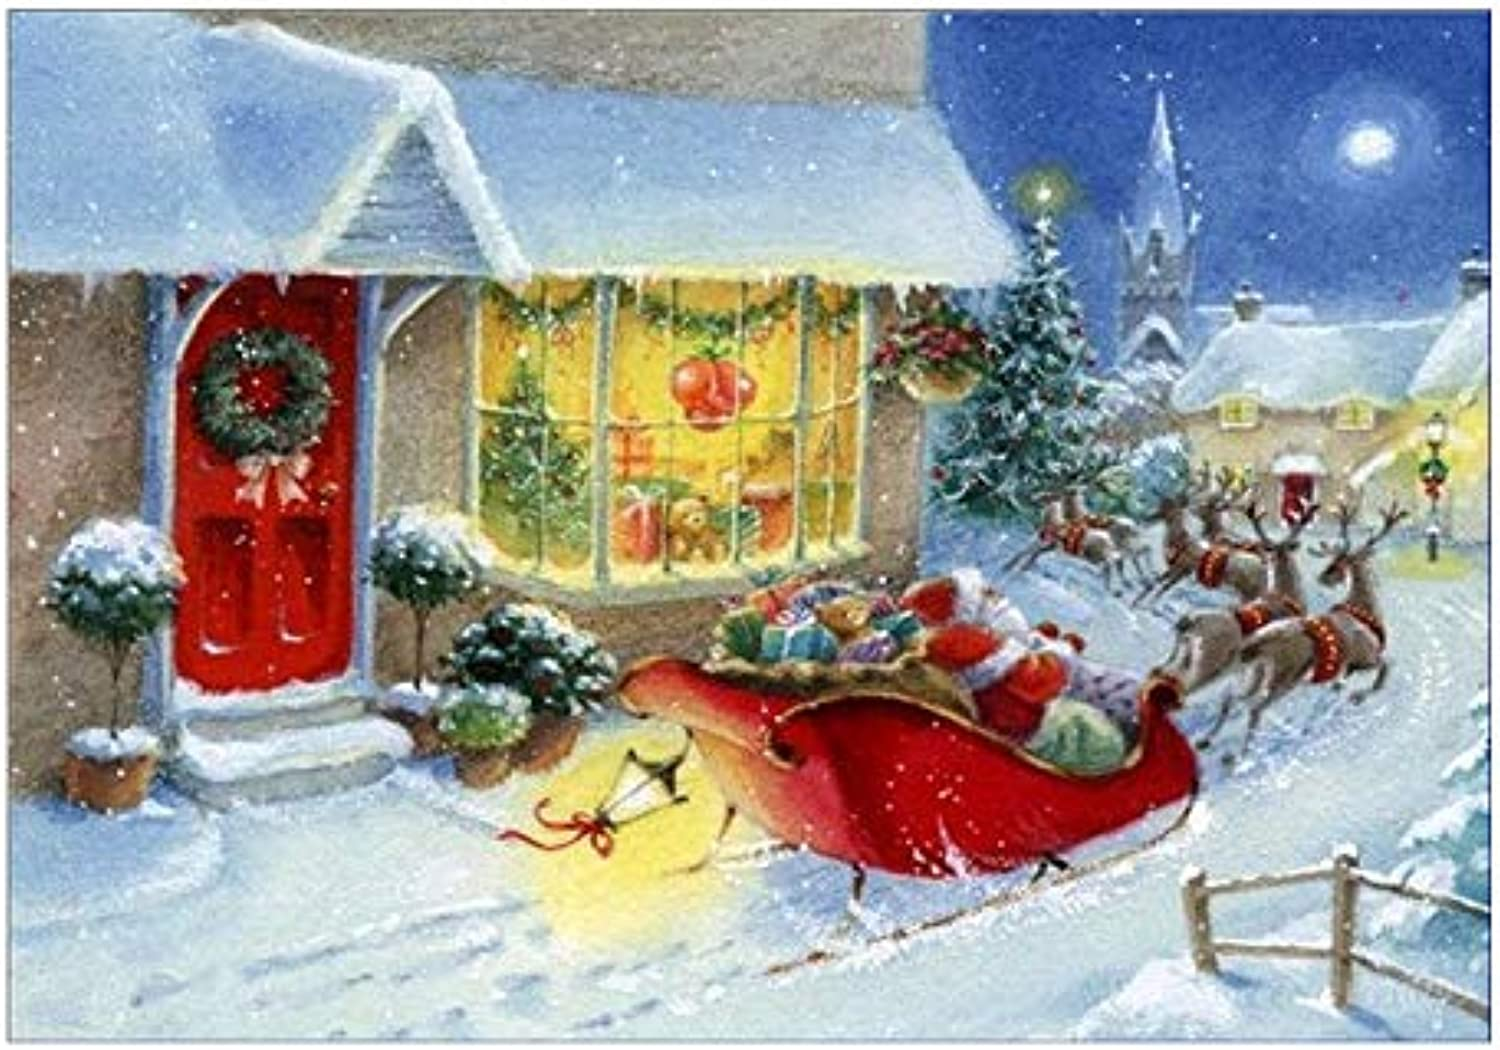 Paint By Digital Kit For Kids And Adults With Frame, Diy Oil Painting -Red House Santa, Gift 16''X20'' Inch